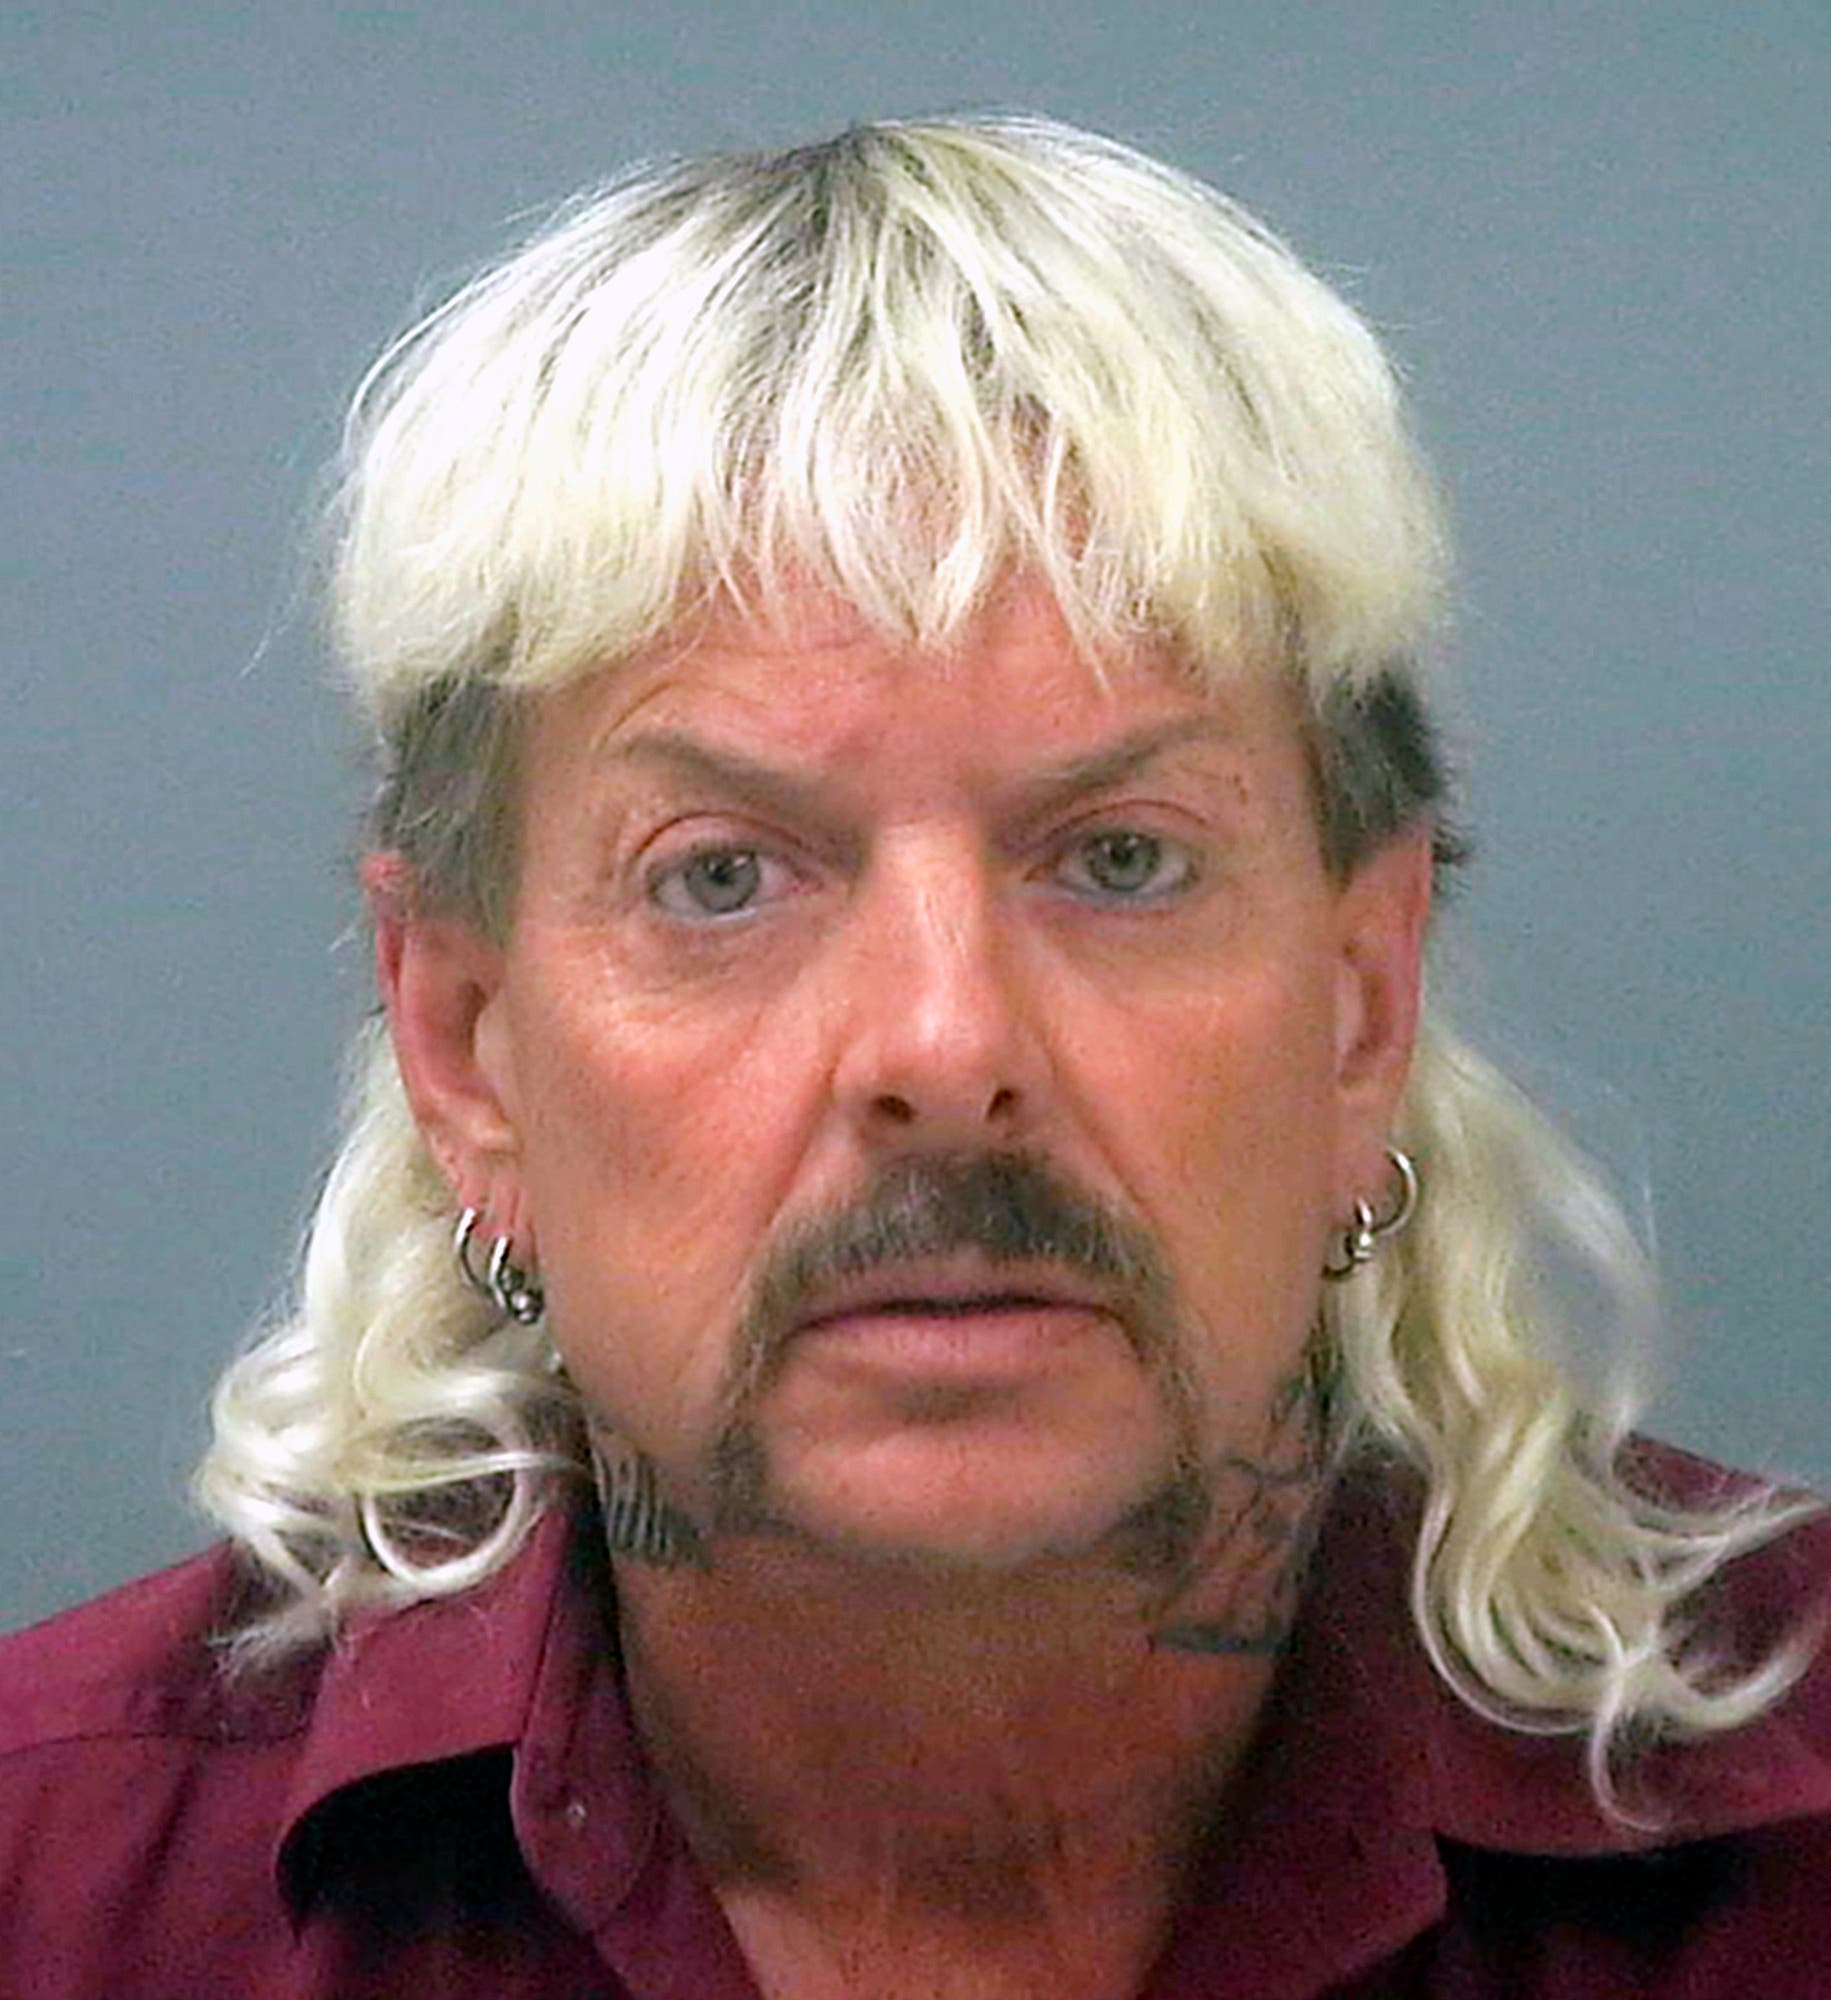 This undated file photo provided by the Santa Rose County Jail in Milton, Fla., shows Joseph Maldonado-Passage, also known as Joe Exotic. (AP)